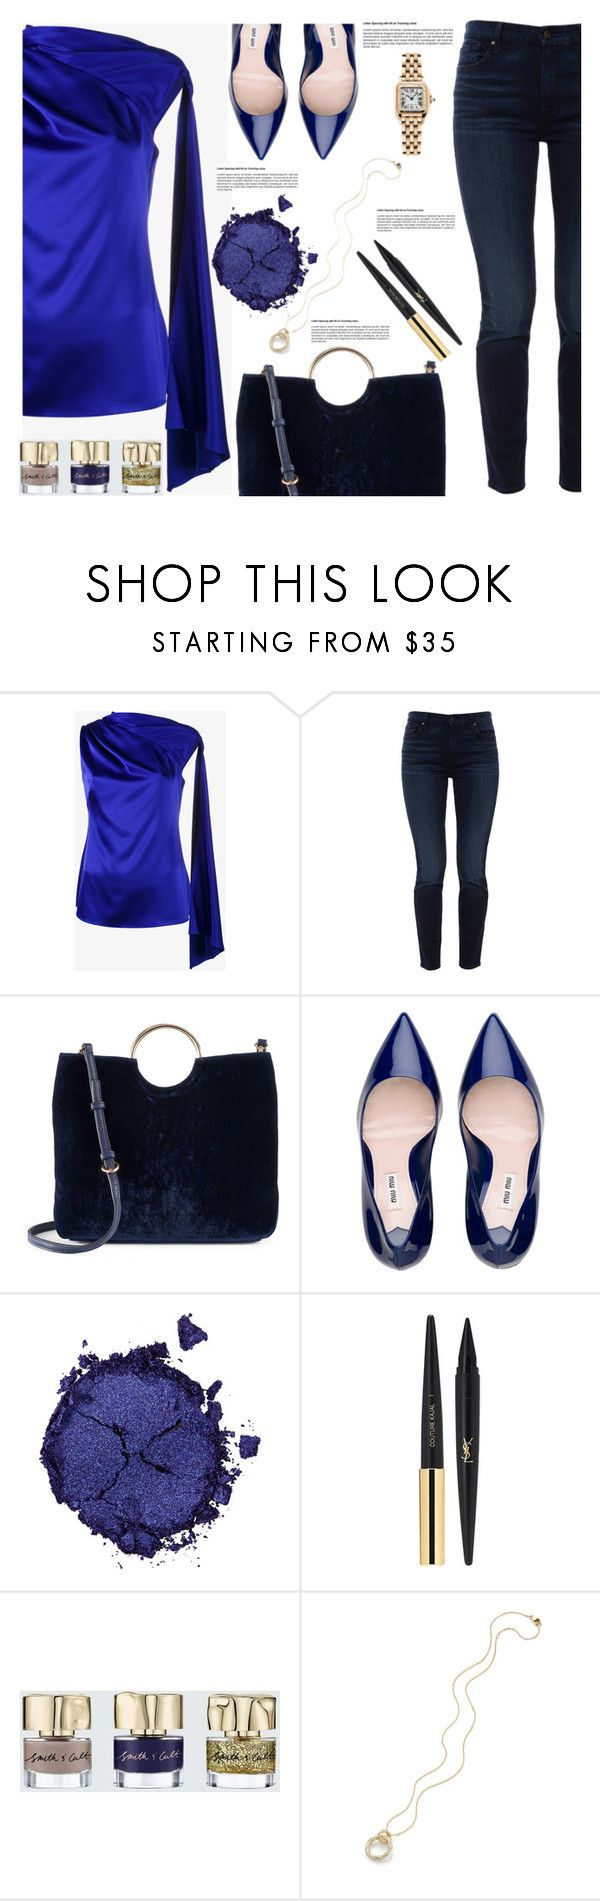 """Untitled #1792"" by lbite ❤ liked on Polyvore featuring Osman, Jen7, LC Lauren Conrad, Pat McGrath, Yves Saint Laurent, Smith & Cult, Cartier, polyvorecommunity and polyvoreeditorial"